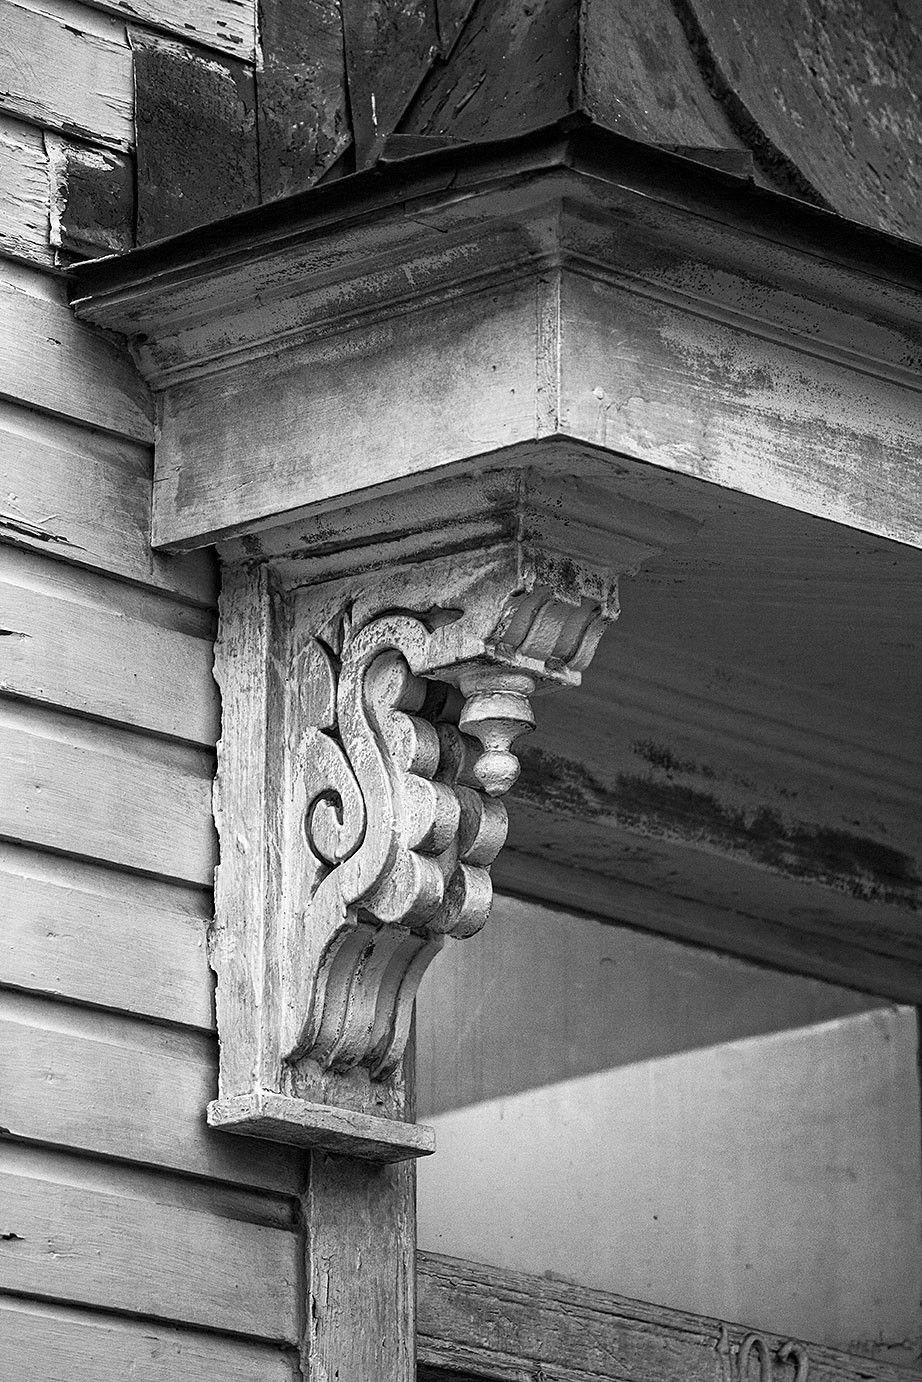 Black And White Architectural Detail Photograph Of Antique Wooden Corbel Under The Eave Of A Porch An Old House In Brick Exterior House Wooden Corbels Corbels